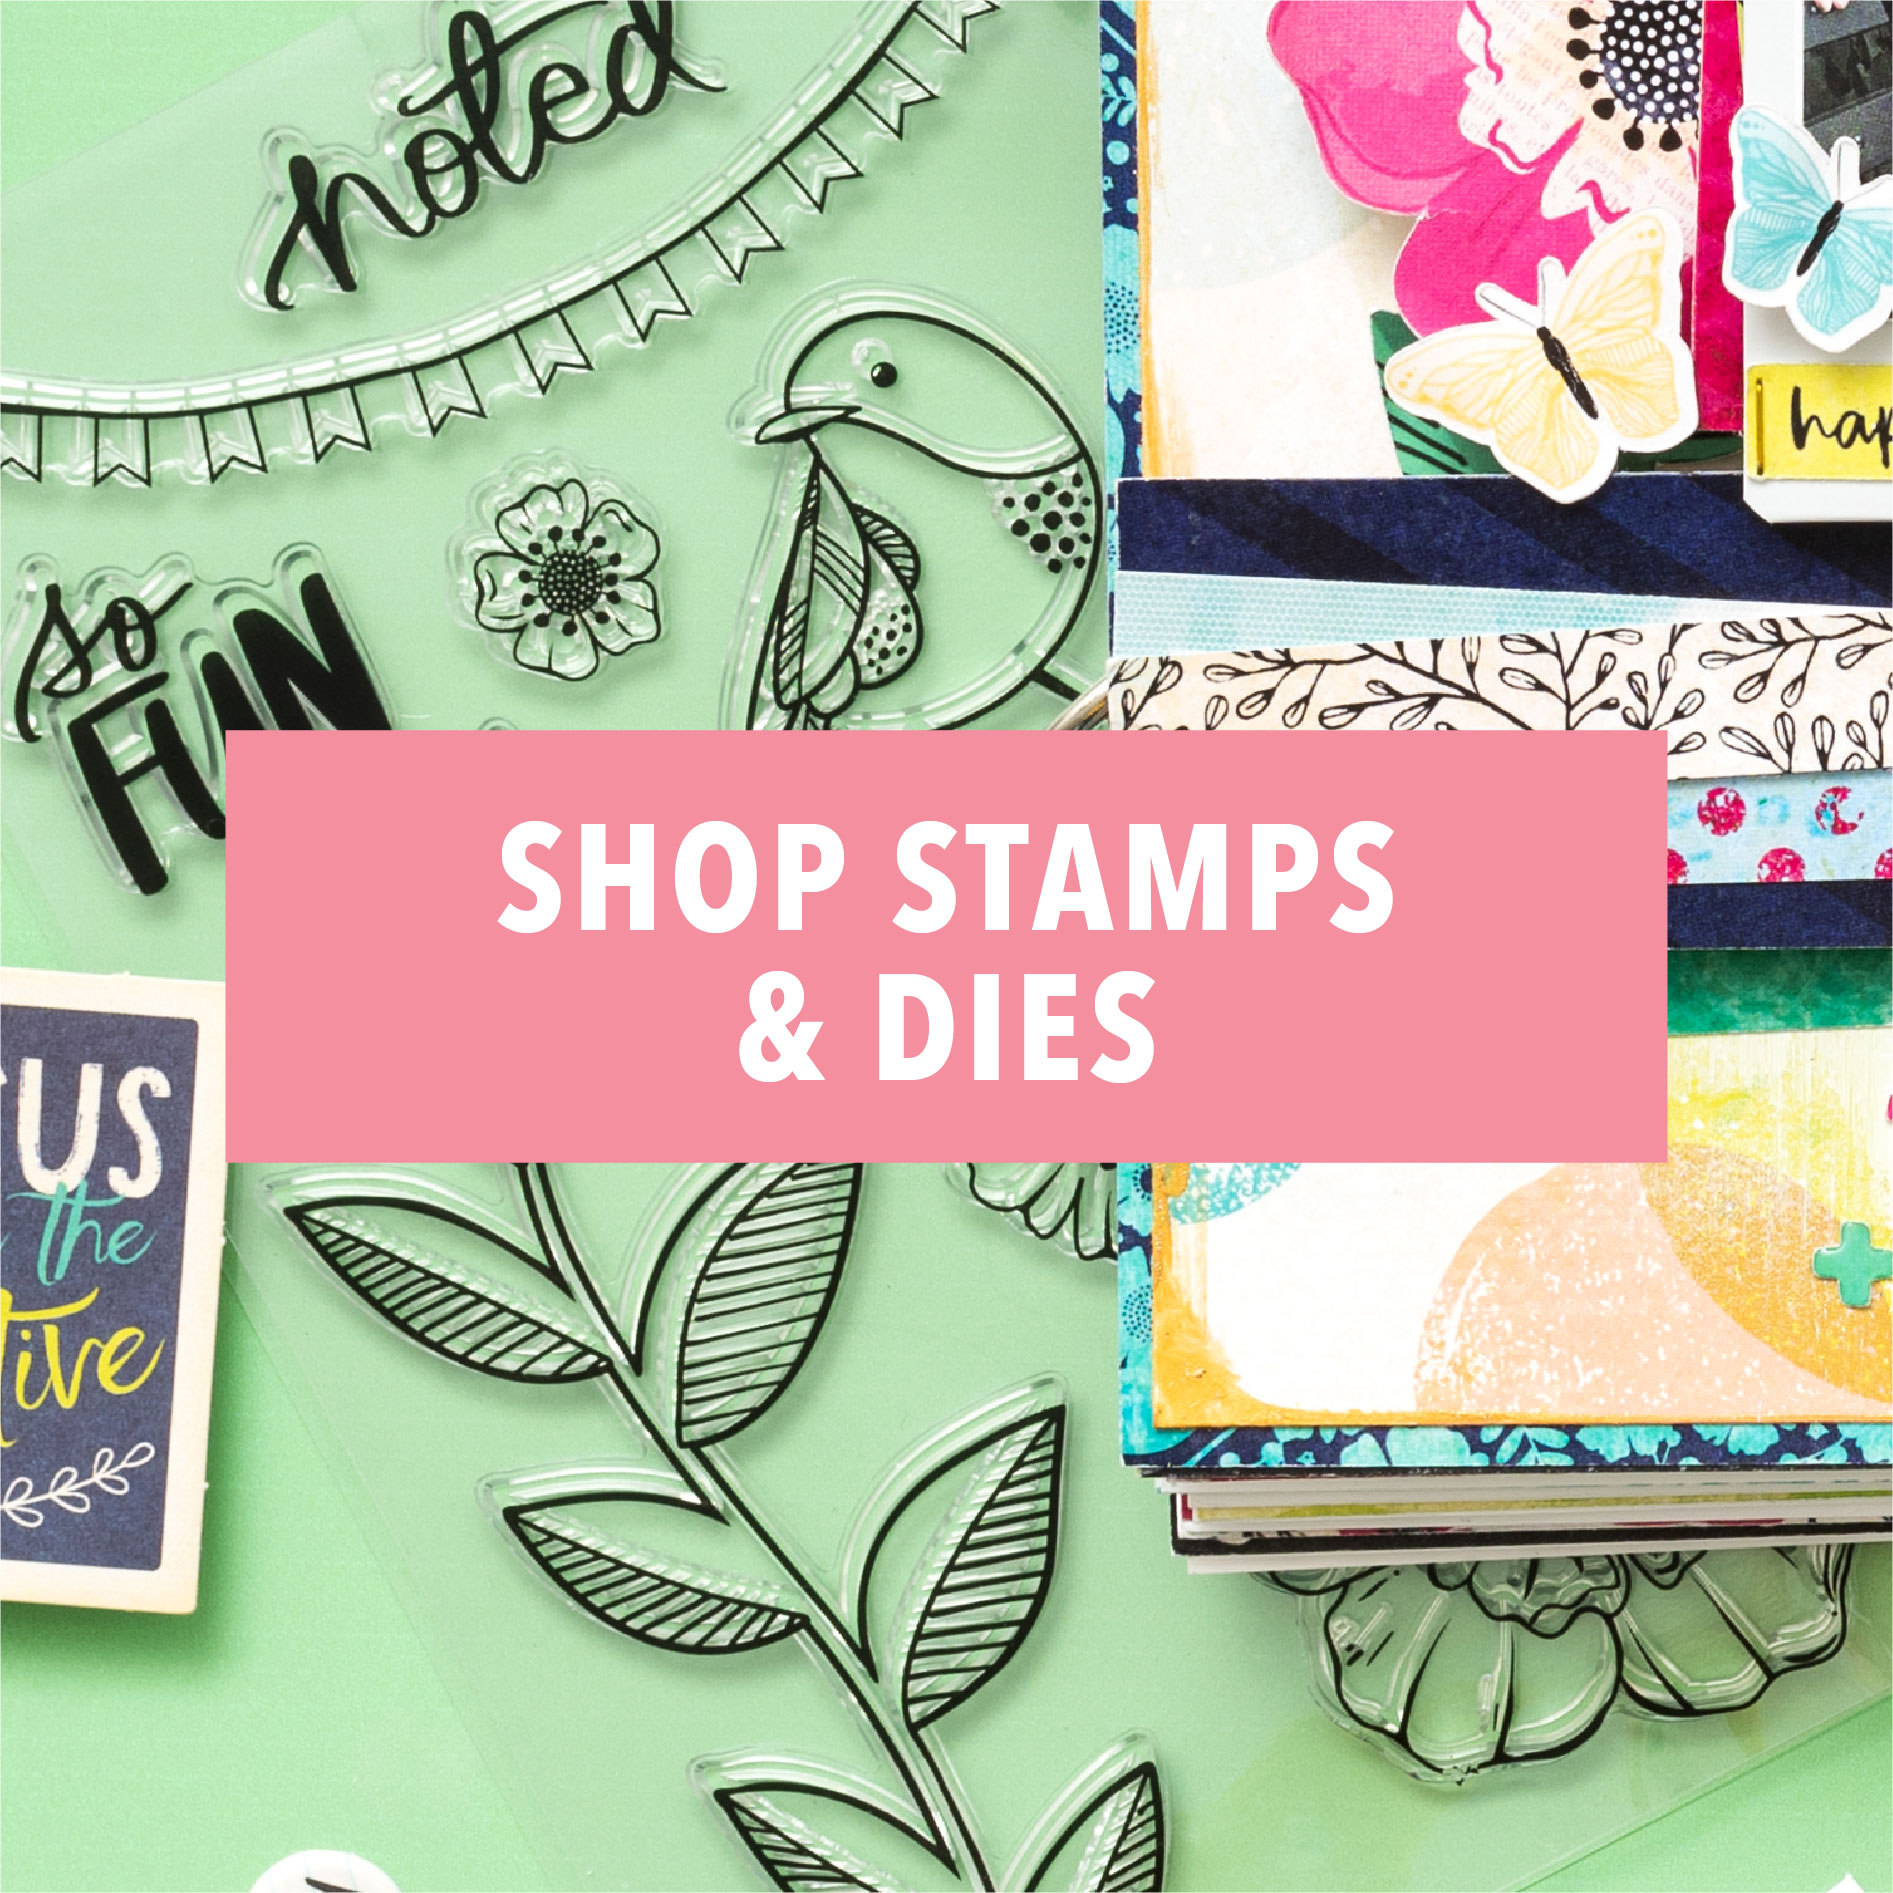 9_VB_LandingPage_ShopStampsDies